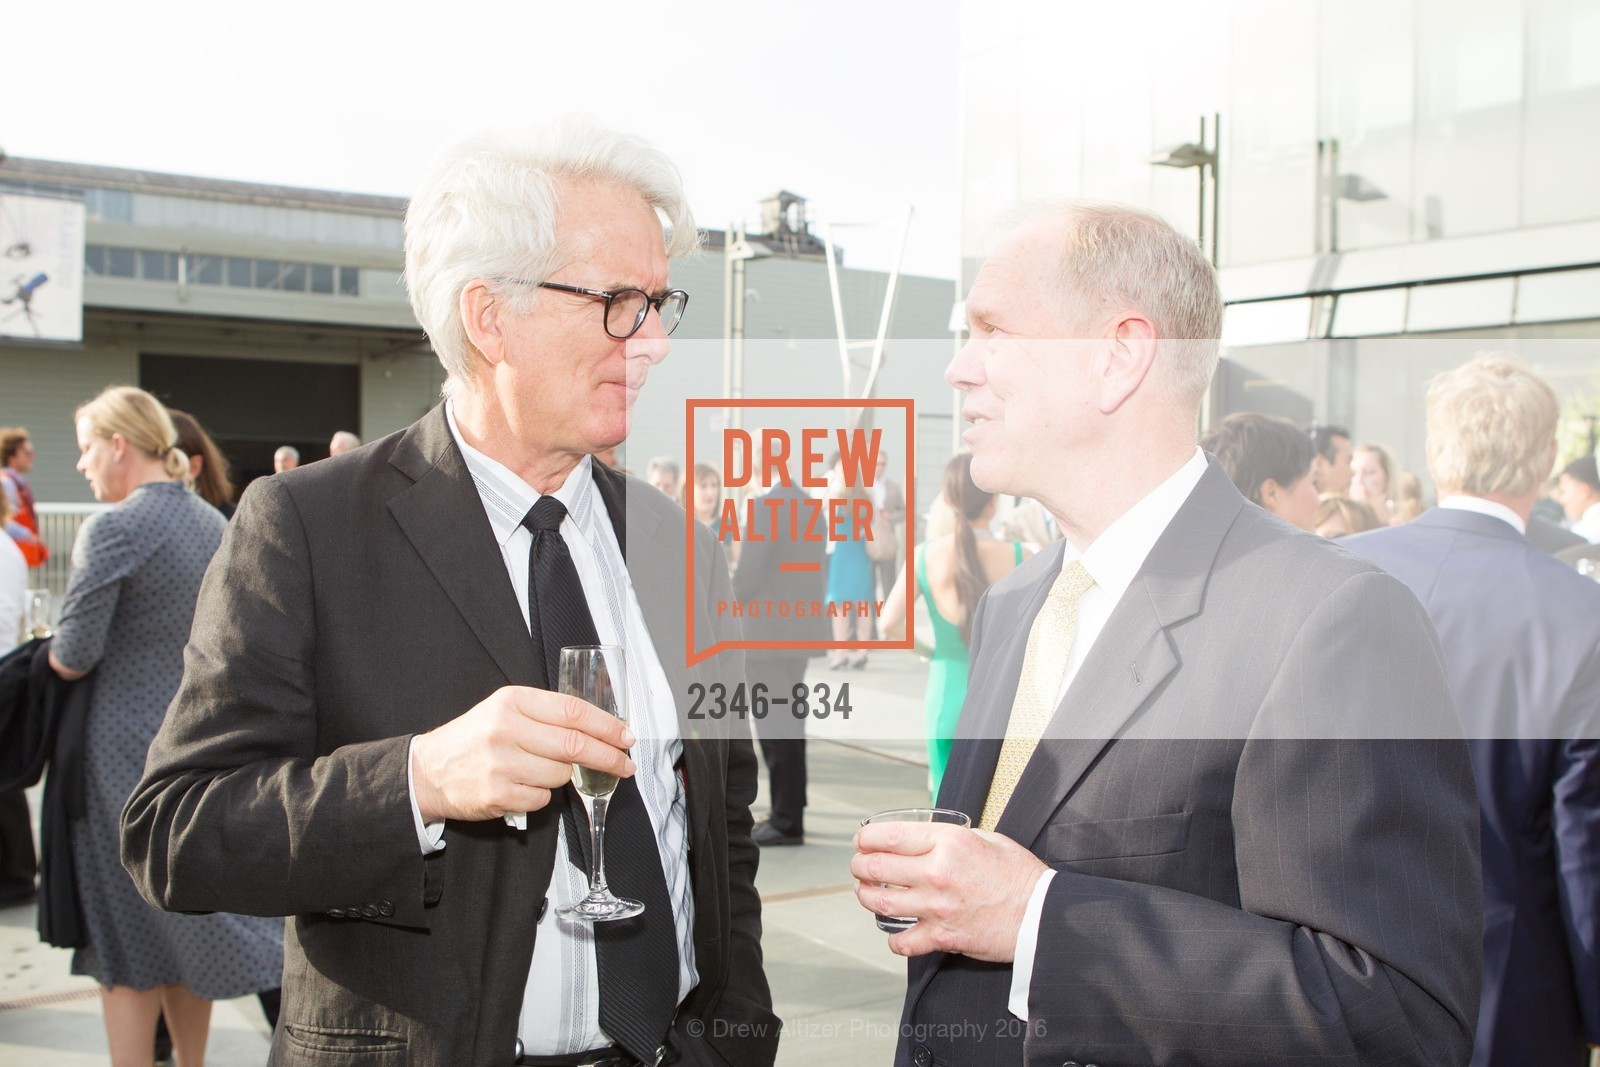 Paul Cooley, Bob Davidson, Exploratorium Spring Gala, Exploratorium, 140515, May 15th, 2014,Drew Altizer, Drew Altizer Photography, full-service agency, private events, San Francisco photographer, photographer california